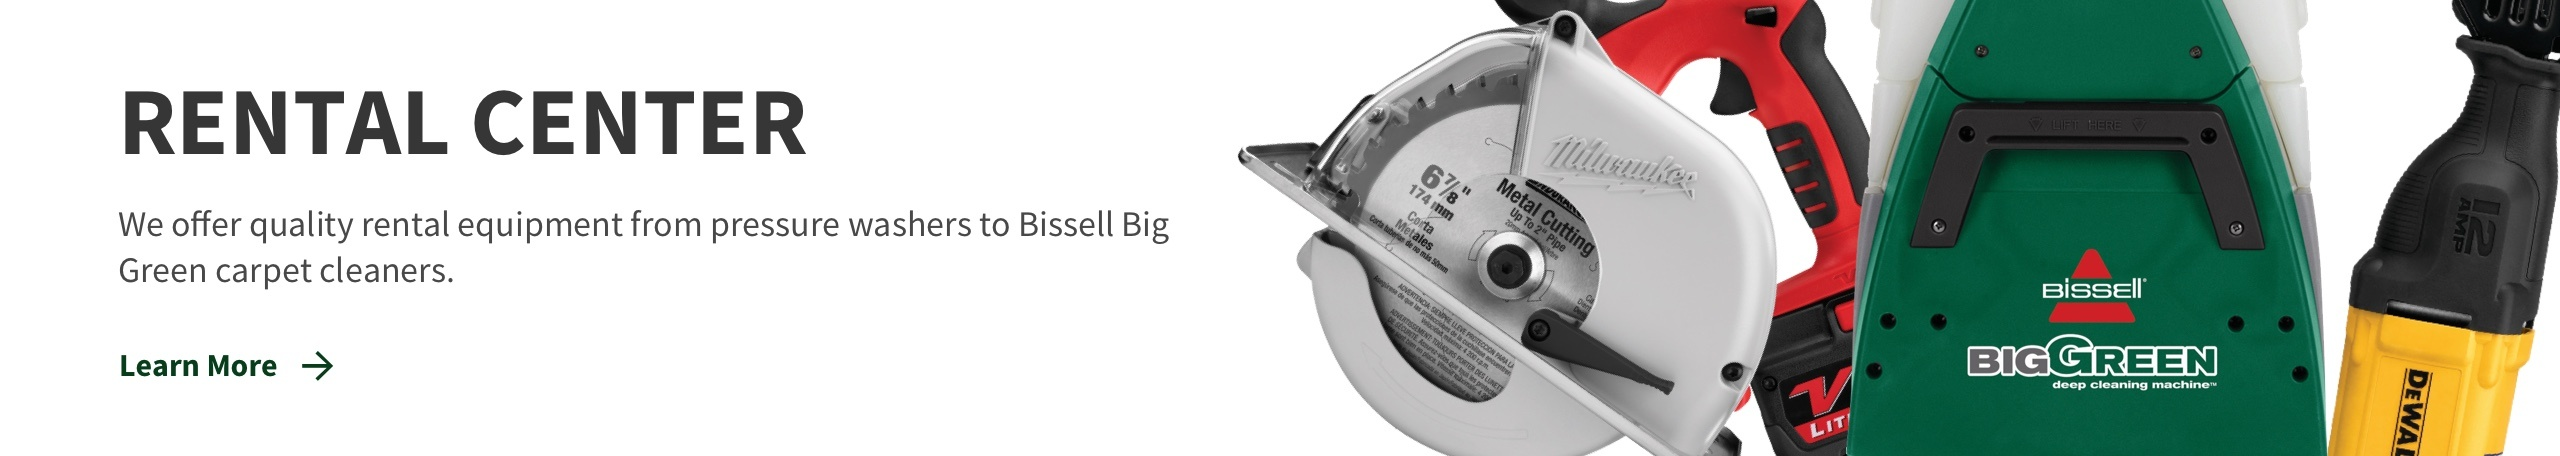 Rental Center - We offer quality rental equipment from pressure washers to Bissell Big Green carpet cleaners - click to learn more